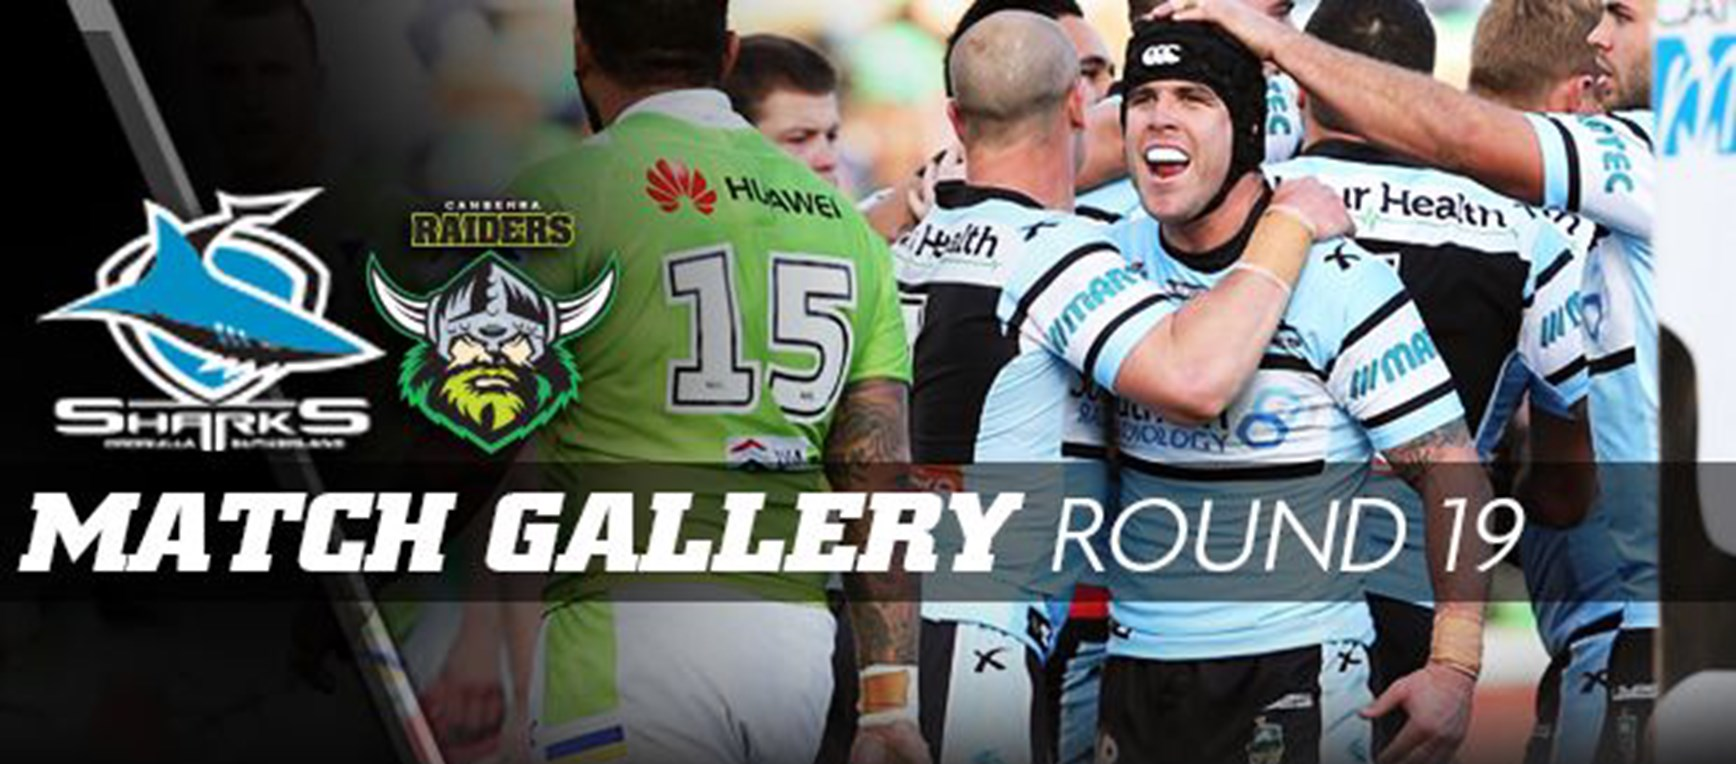 Rd 19 MATCH GALLERY | Sharks v Raiders